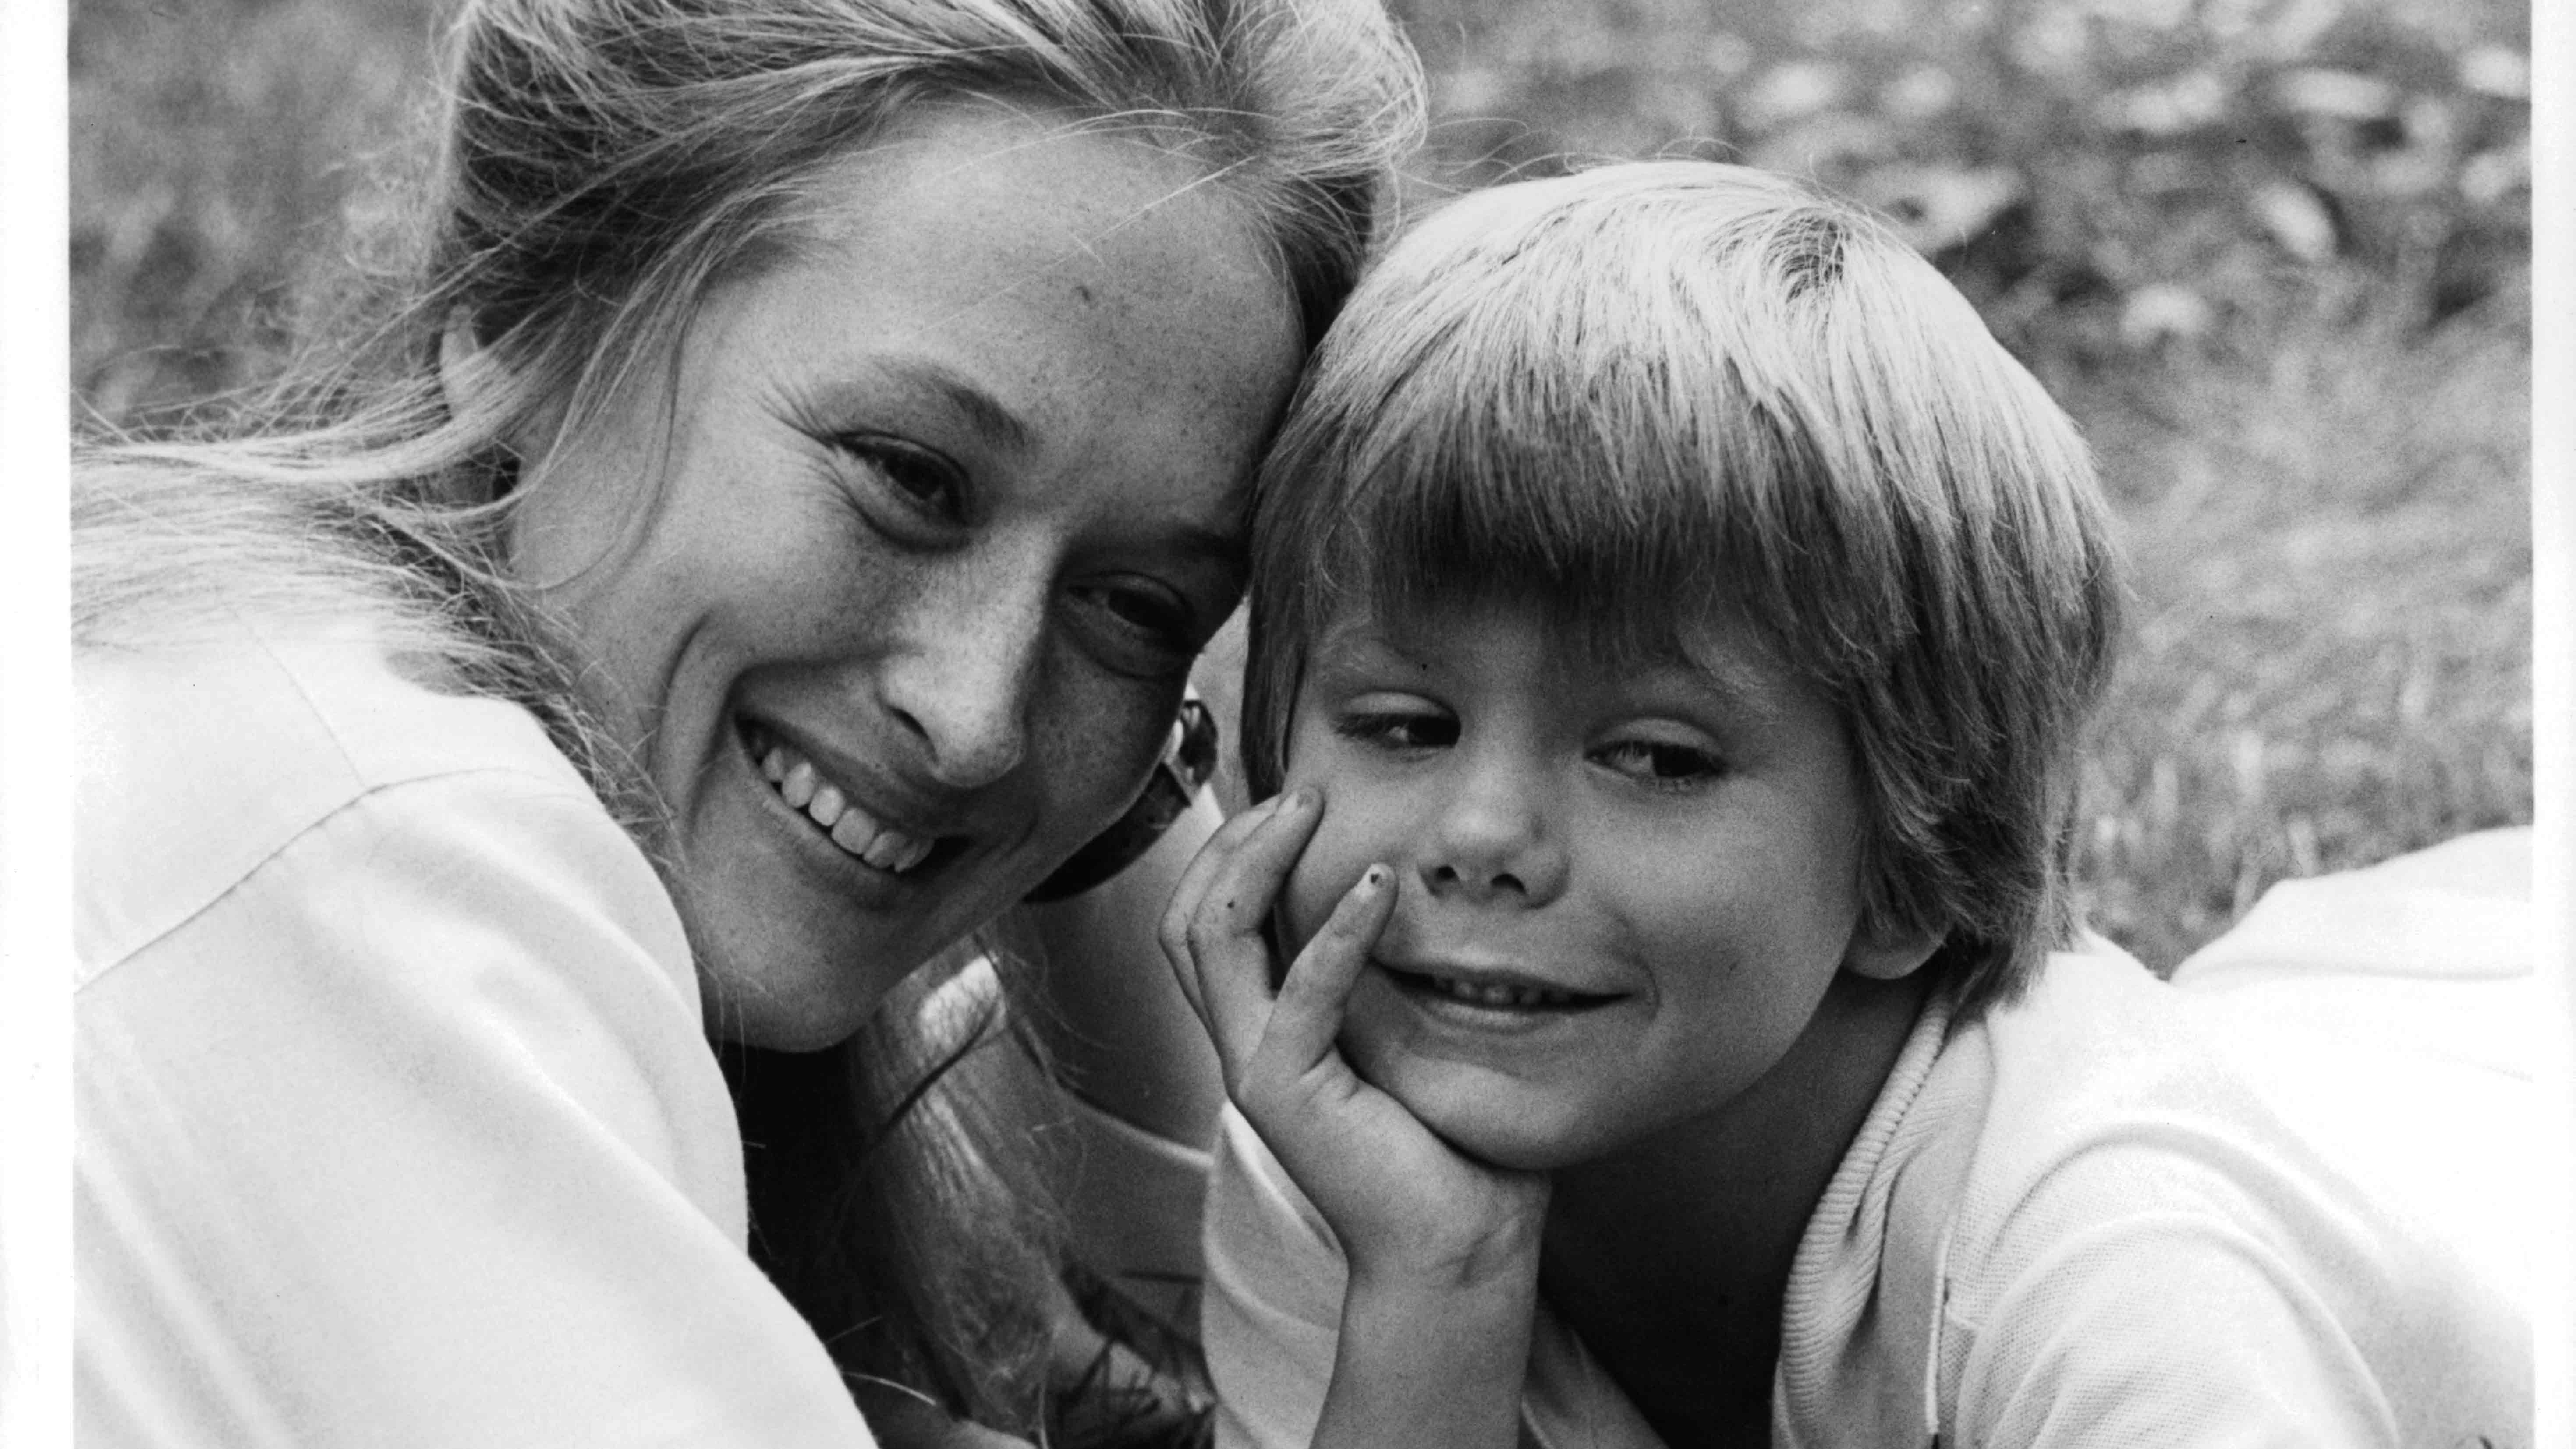 10 facts you didn't know about Meryl Streep